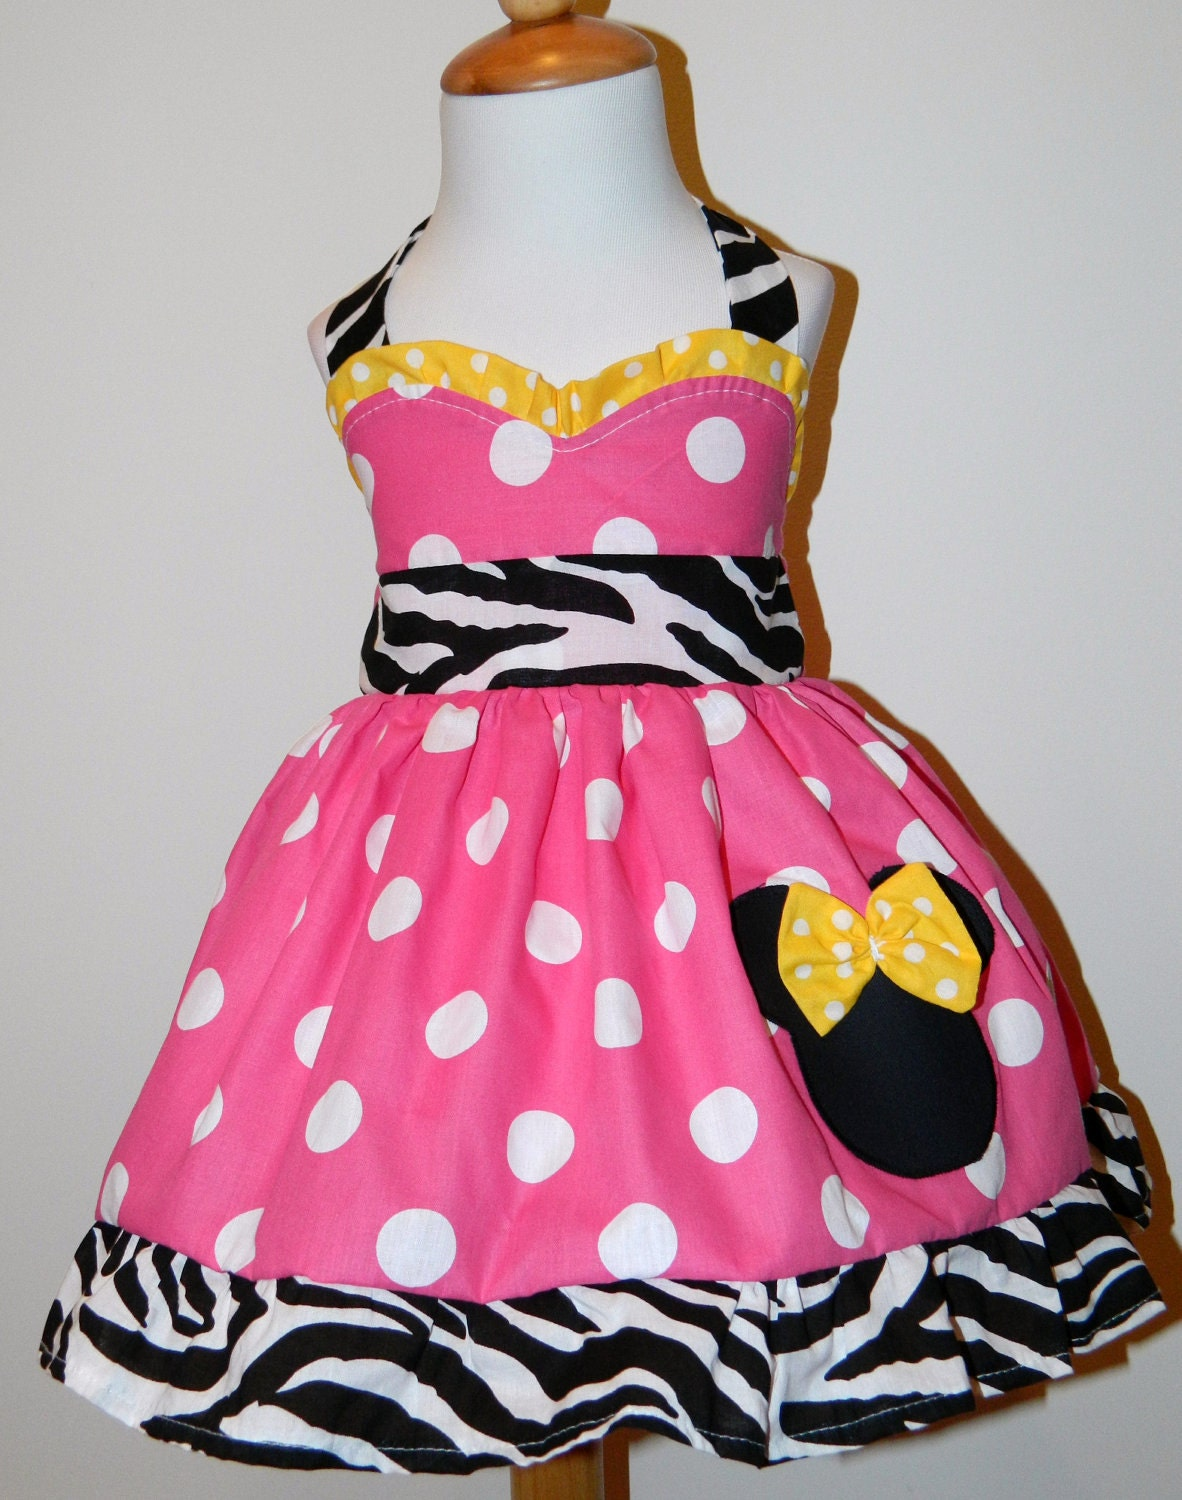 Minnie Mouse Girls' Dresses. Showing 48 of results that match your query. Search Product Result. Product - Minnie Mouse Girls' thermal 2-Piece underwear set. Product - Disney Minnie Mouse Baby Girls' Costume Tutu Dress Bodysuit. Product Image. Price $ Product Title.